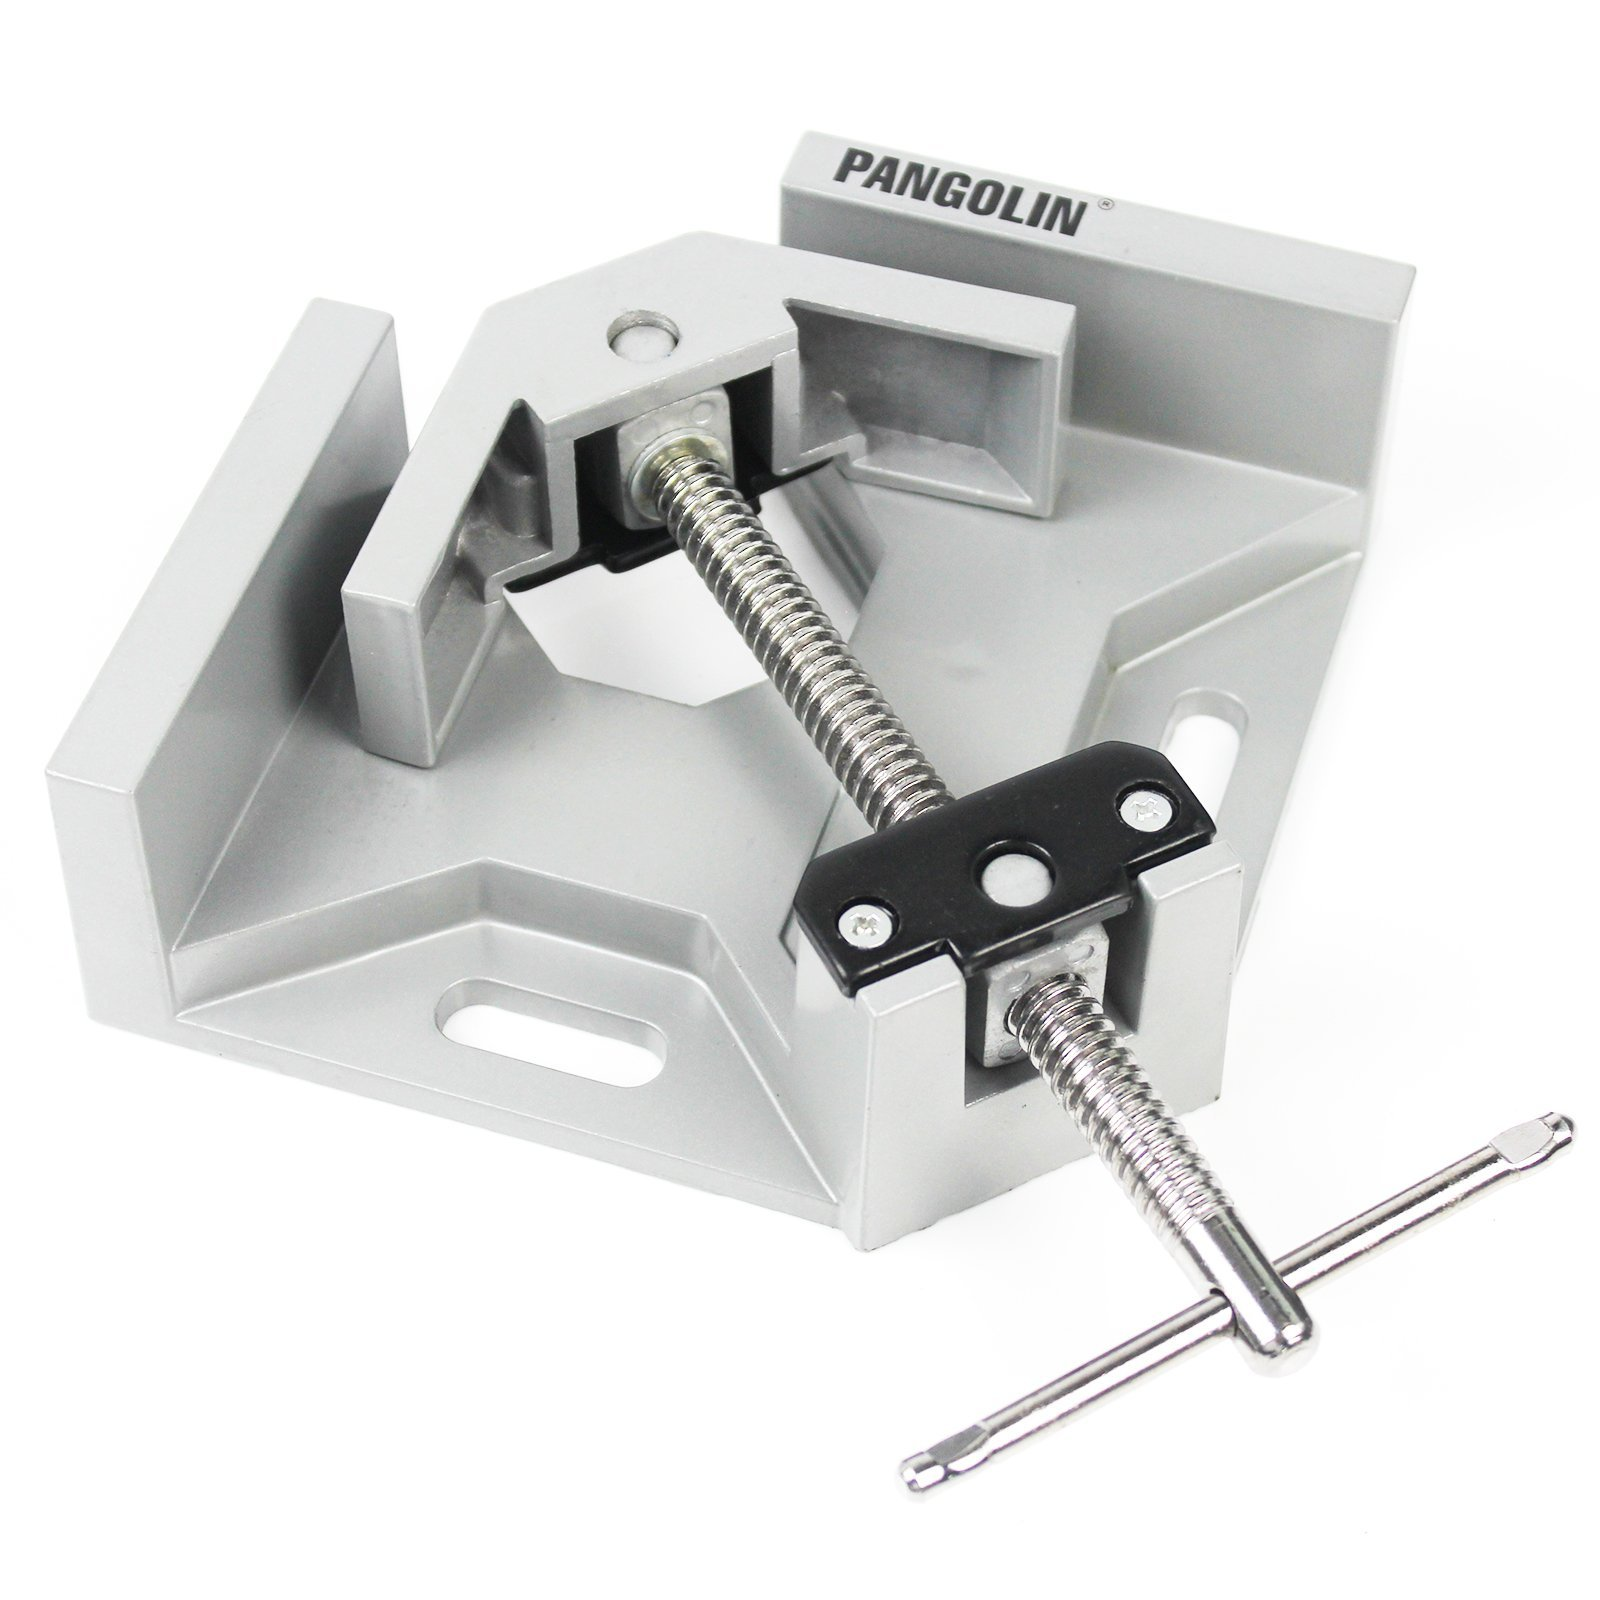 Corner Clamp Holders, PANGOLIN 90 Degree Aluminum Alloy T-Bar Handle Make It Fastening, with Adjustable Right Angle Corner Clamp Vise Ideal for Woodworking, Furniture Repair, Welding -Sliver Surface